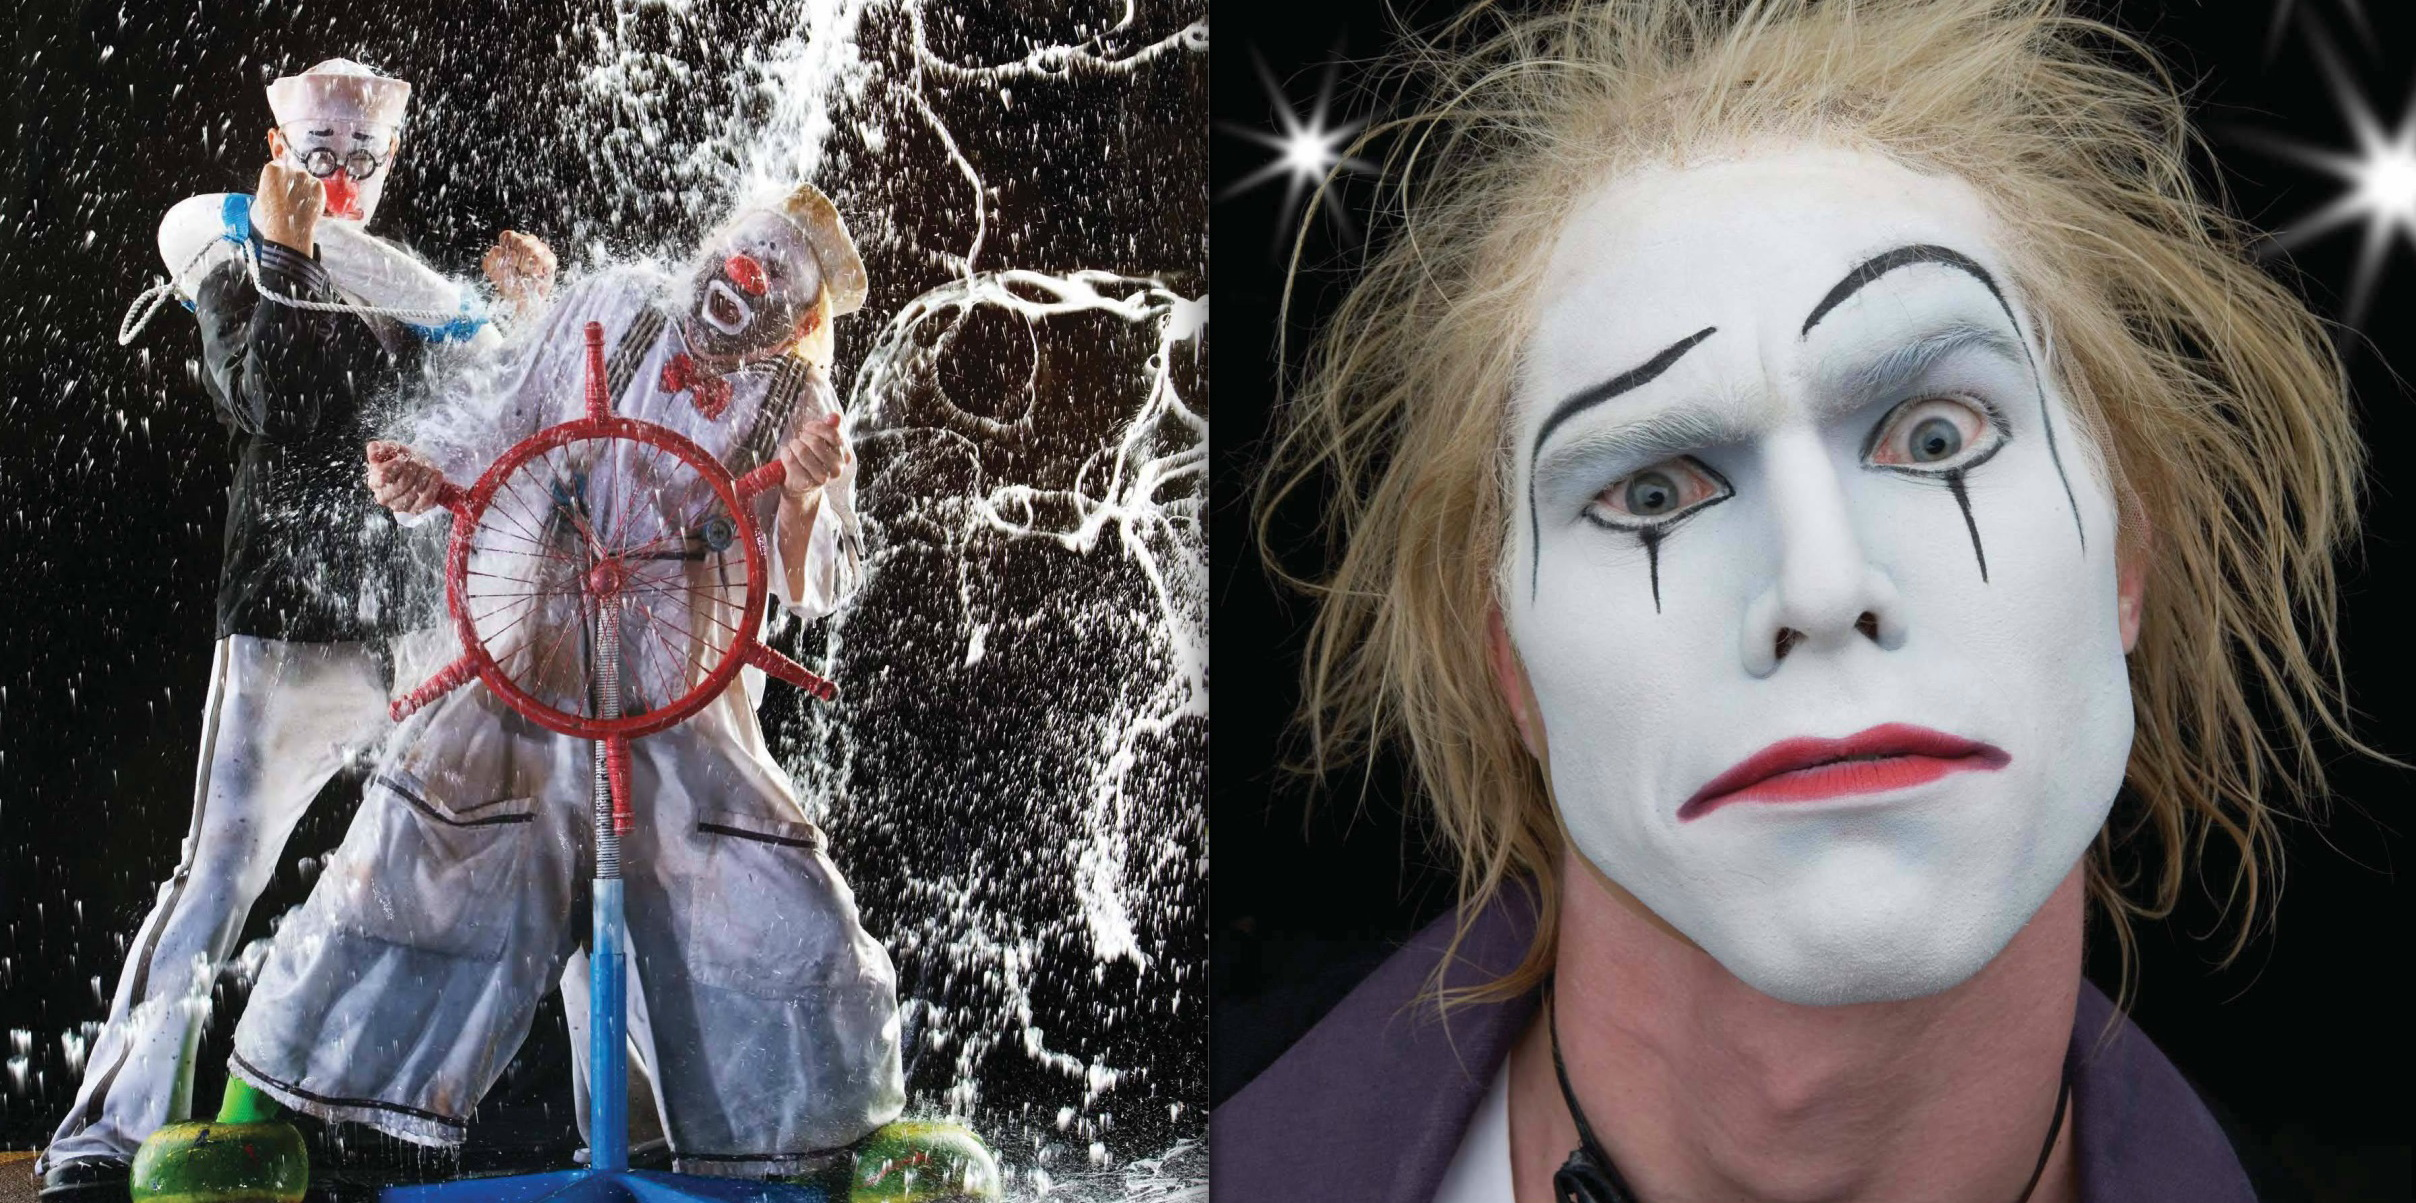 Left: Cirque du Soleil O #93, The Clowns, Leonid Leykin and Valery Keft, photographed in Las Vegas, May 2005. Right: Cirque du Soleil O, #140, Le Vieux, Benedikt Negro, photographed in Las Vegas, May 2005.  © Howard Schatz and Beverly Ornstein